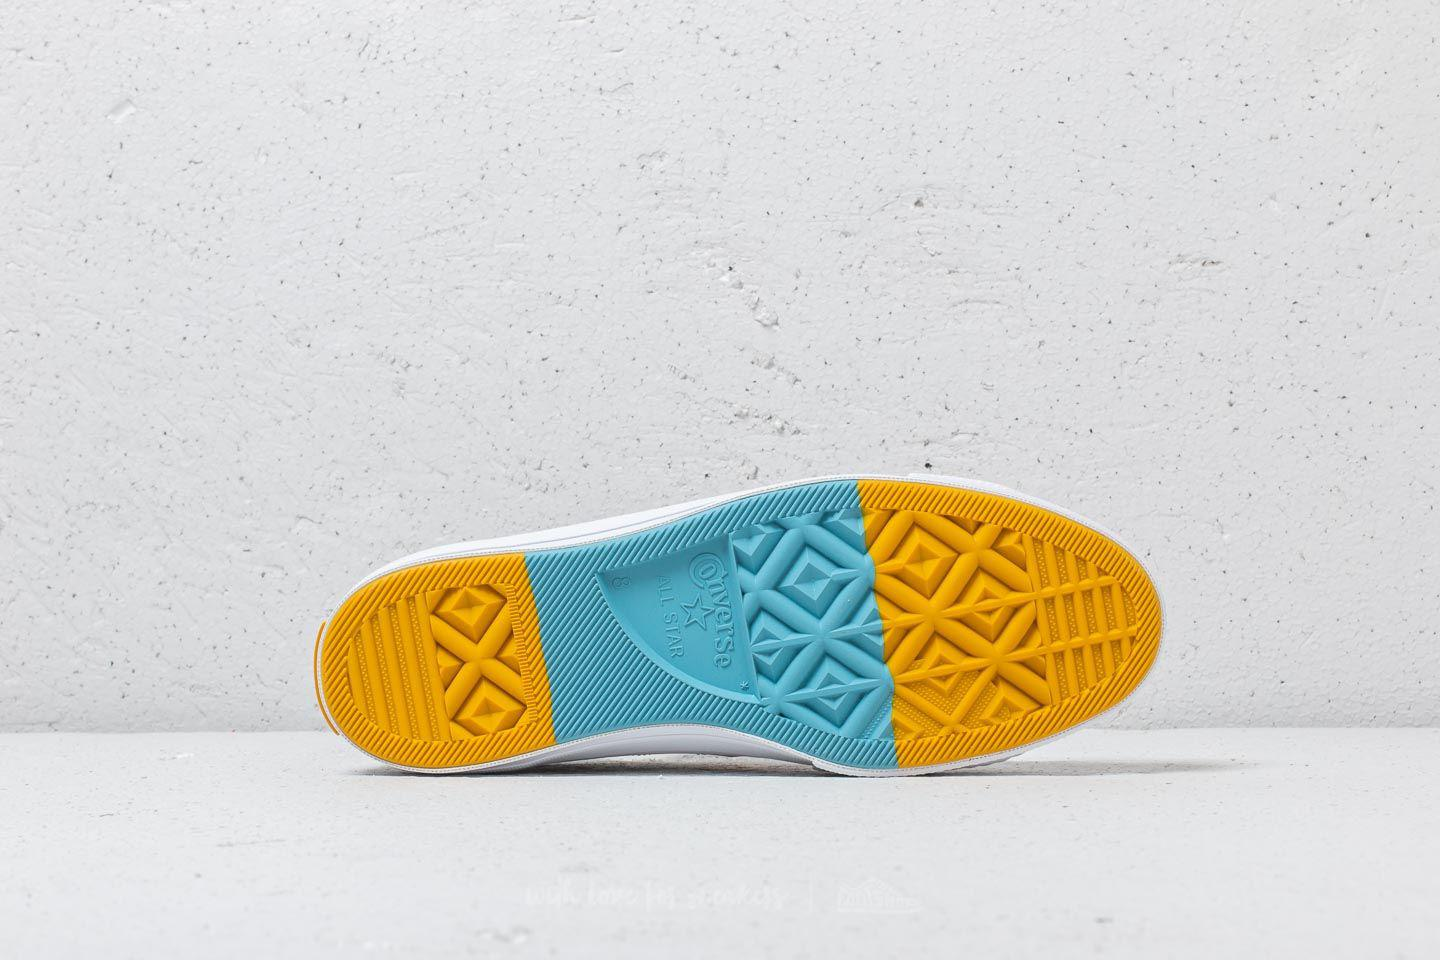 Lyst - Converse One Star Ox White  Mineral Yellow  Shoreline in ... cea45af2a